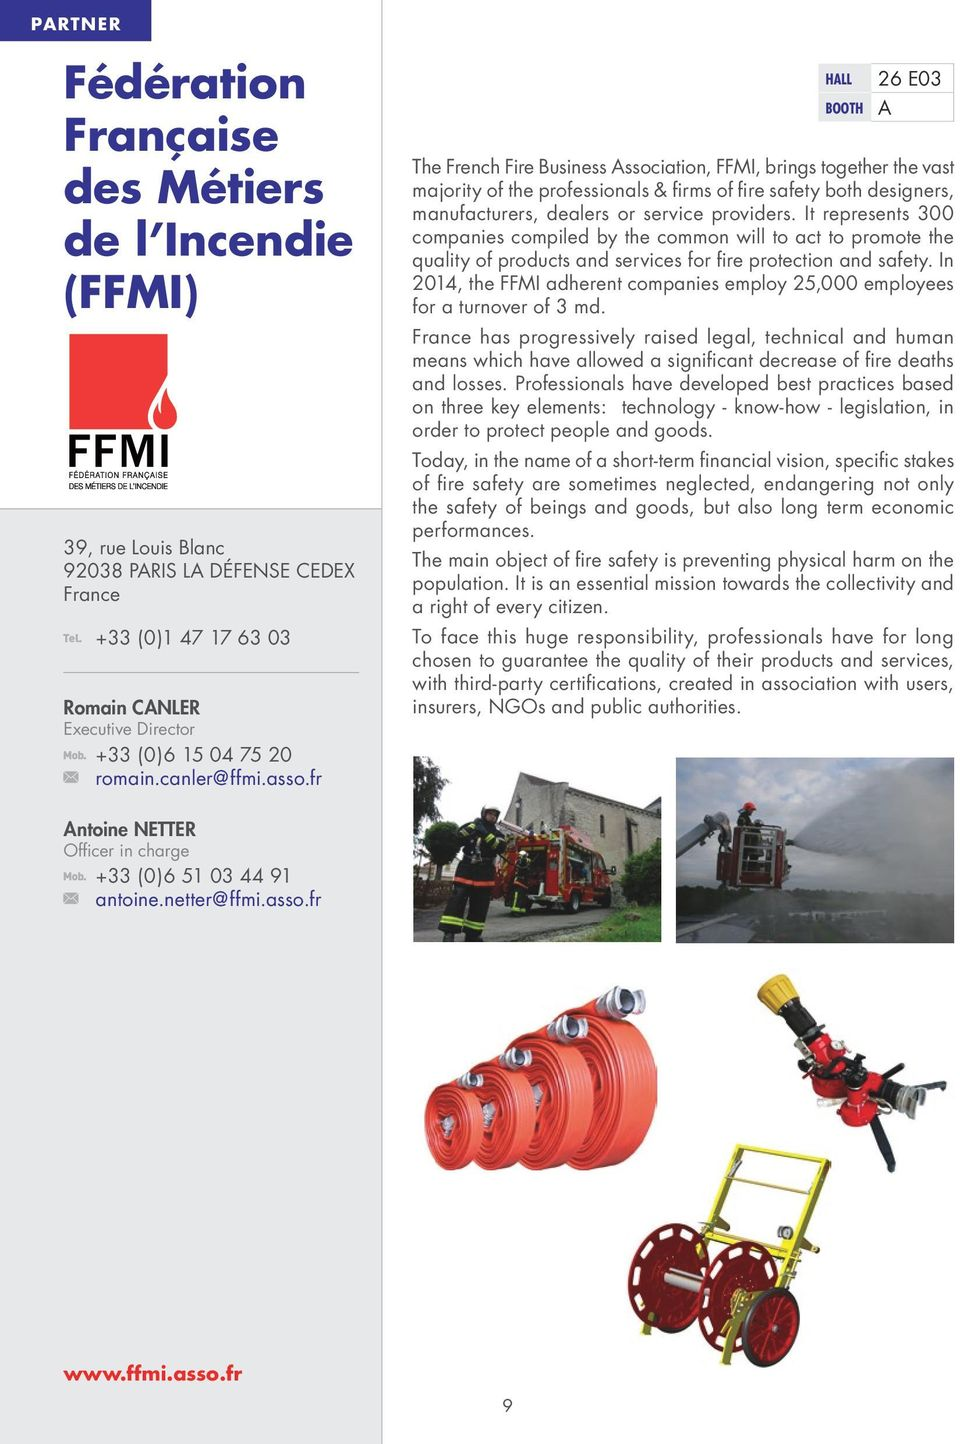 fr 26 E03 The French Fire Business Association, FFMI, brings together the vast majority of the professionals & firms of fire safety both designers, manufacturers, dealers or service providers.